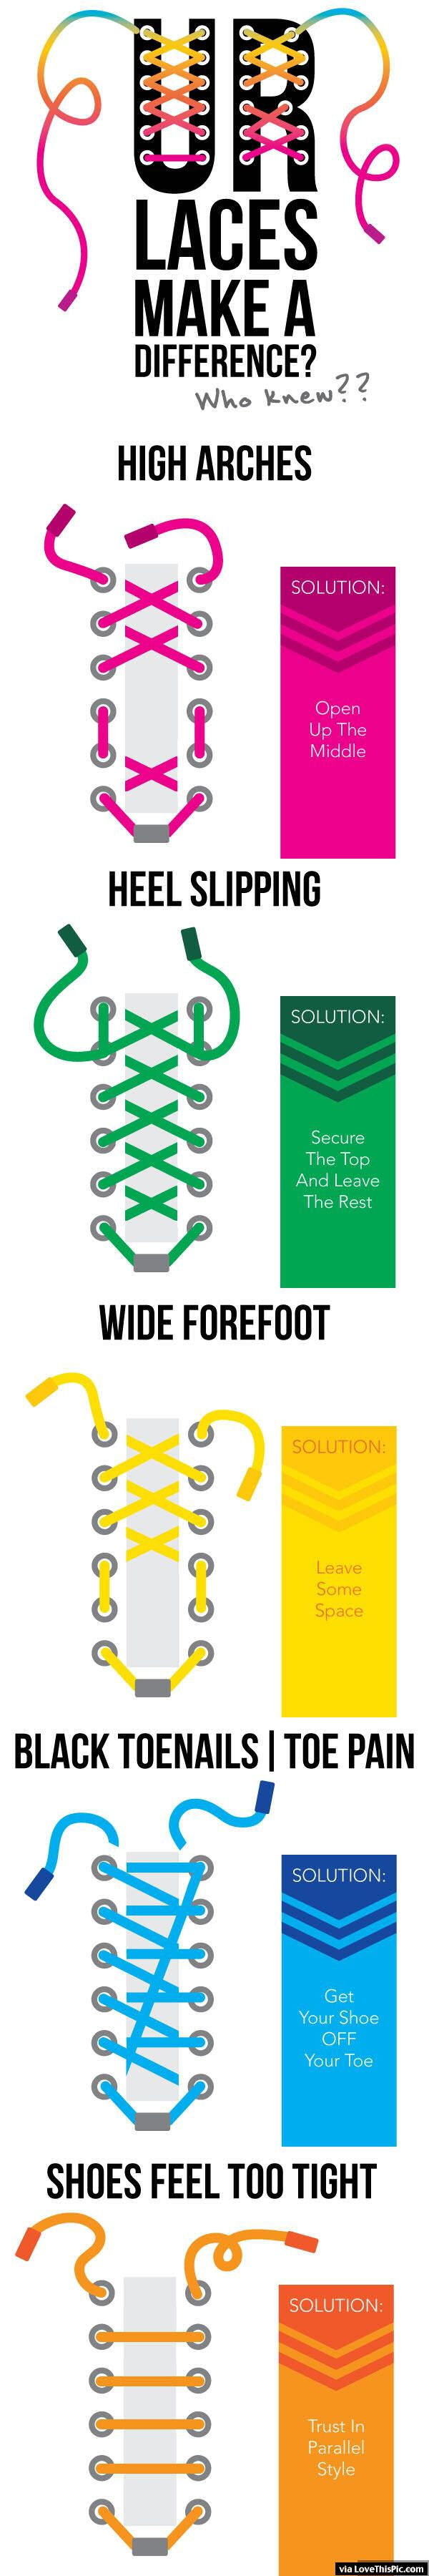 Your Shoelaces Make A Difference On Your Foot shoes body feet interesting fact facts good to know